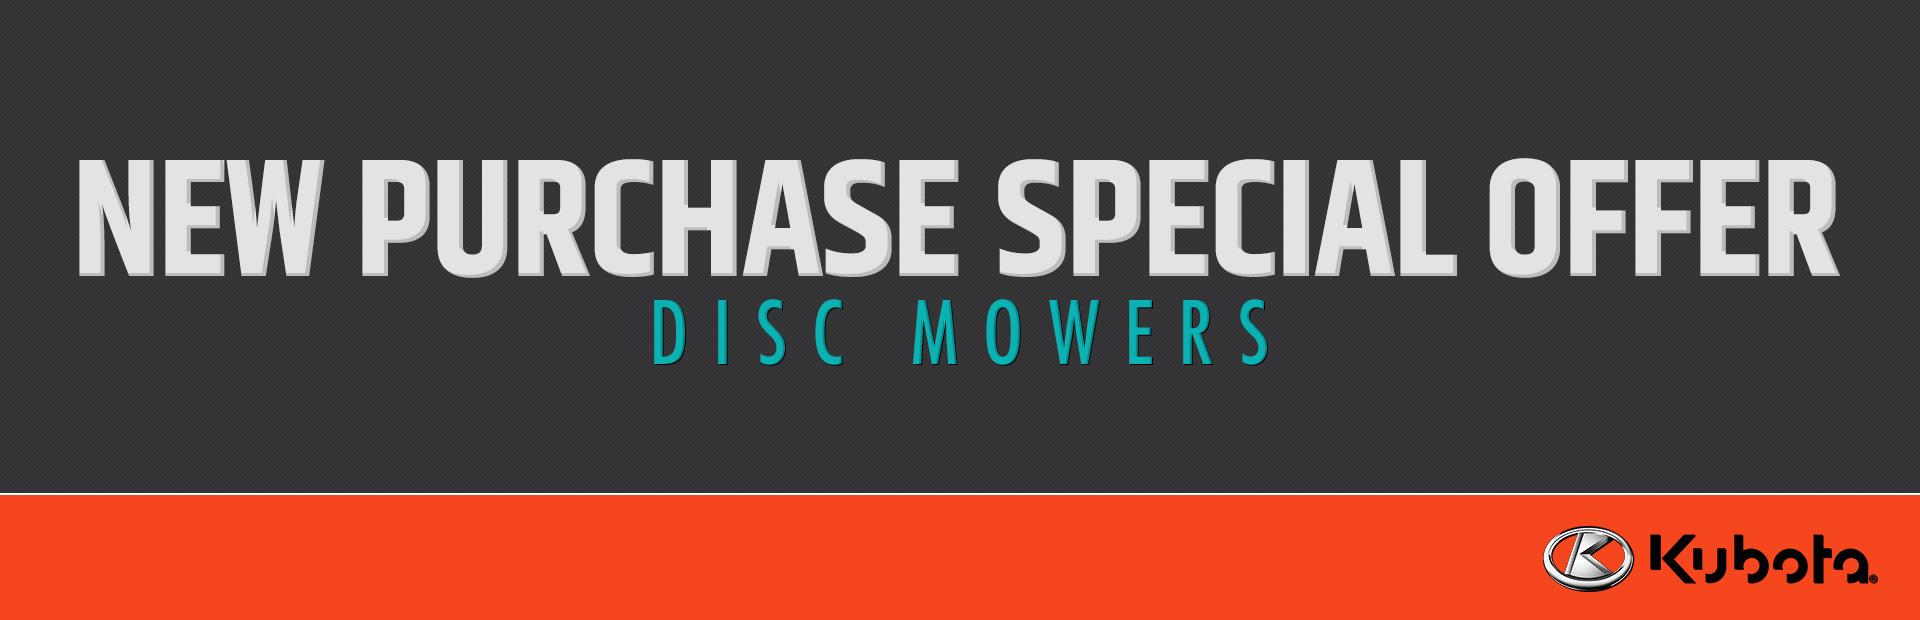 Kubota: New Purchase Special Offer - Disc Mowers